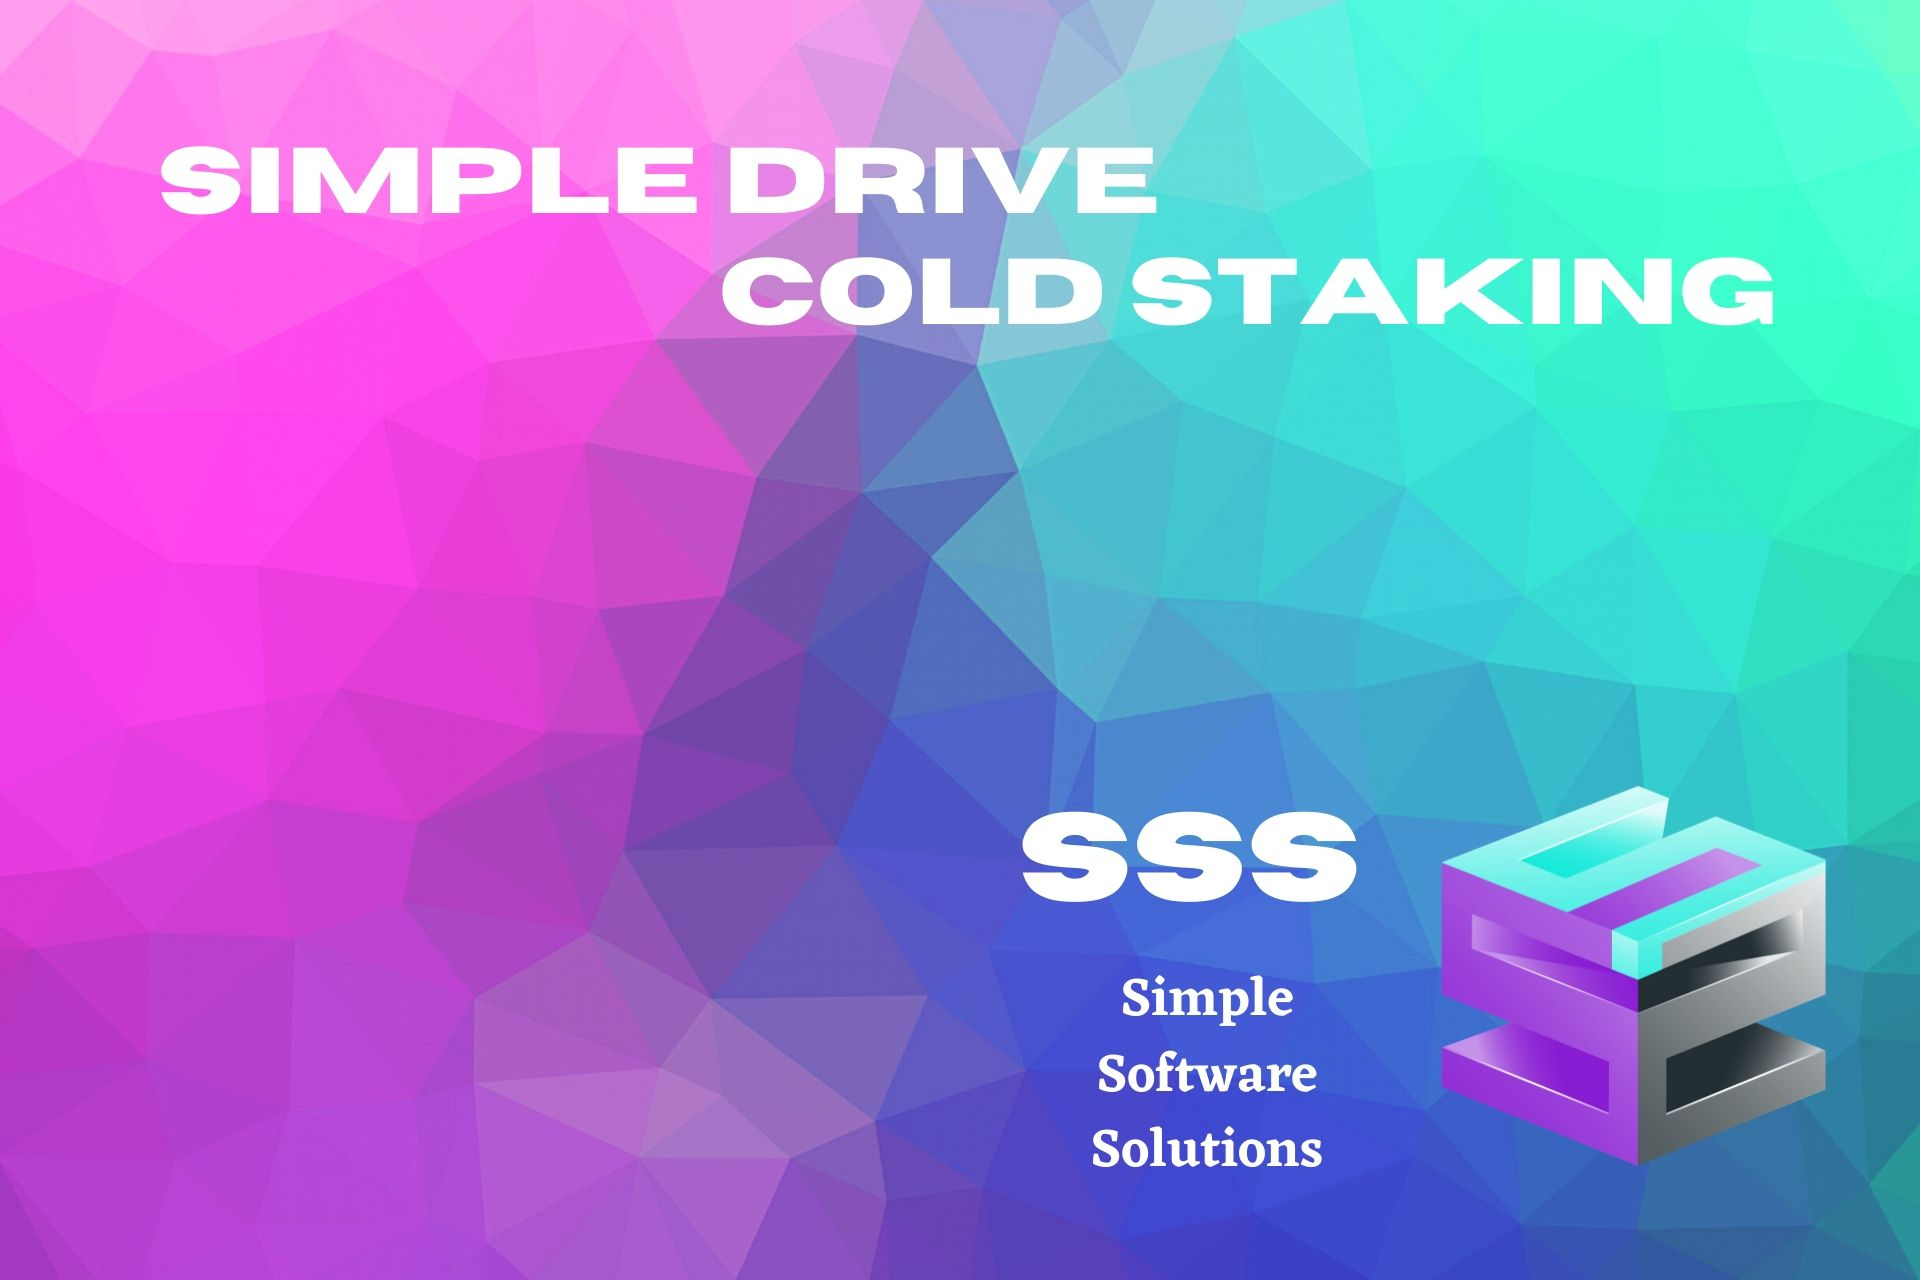 The SSS 2.0 – Cold Staking & Simple Drive